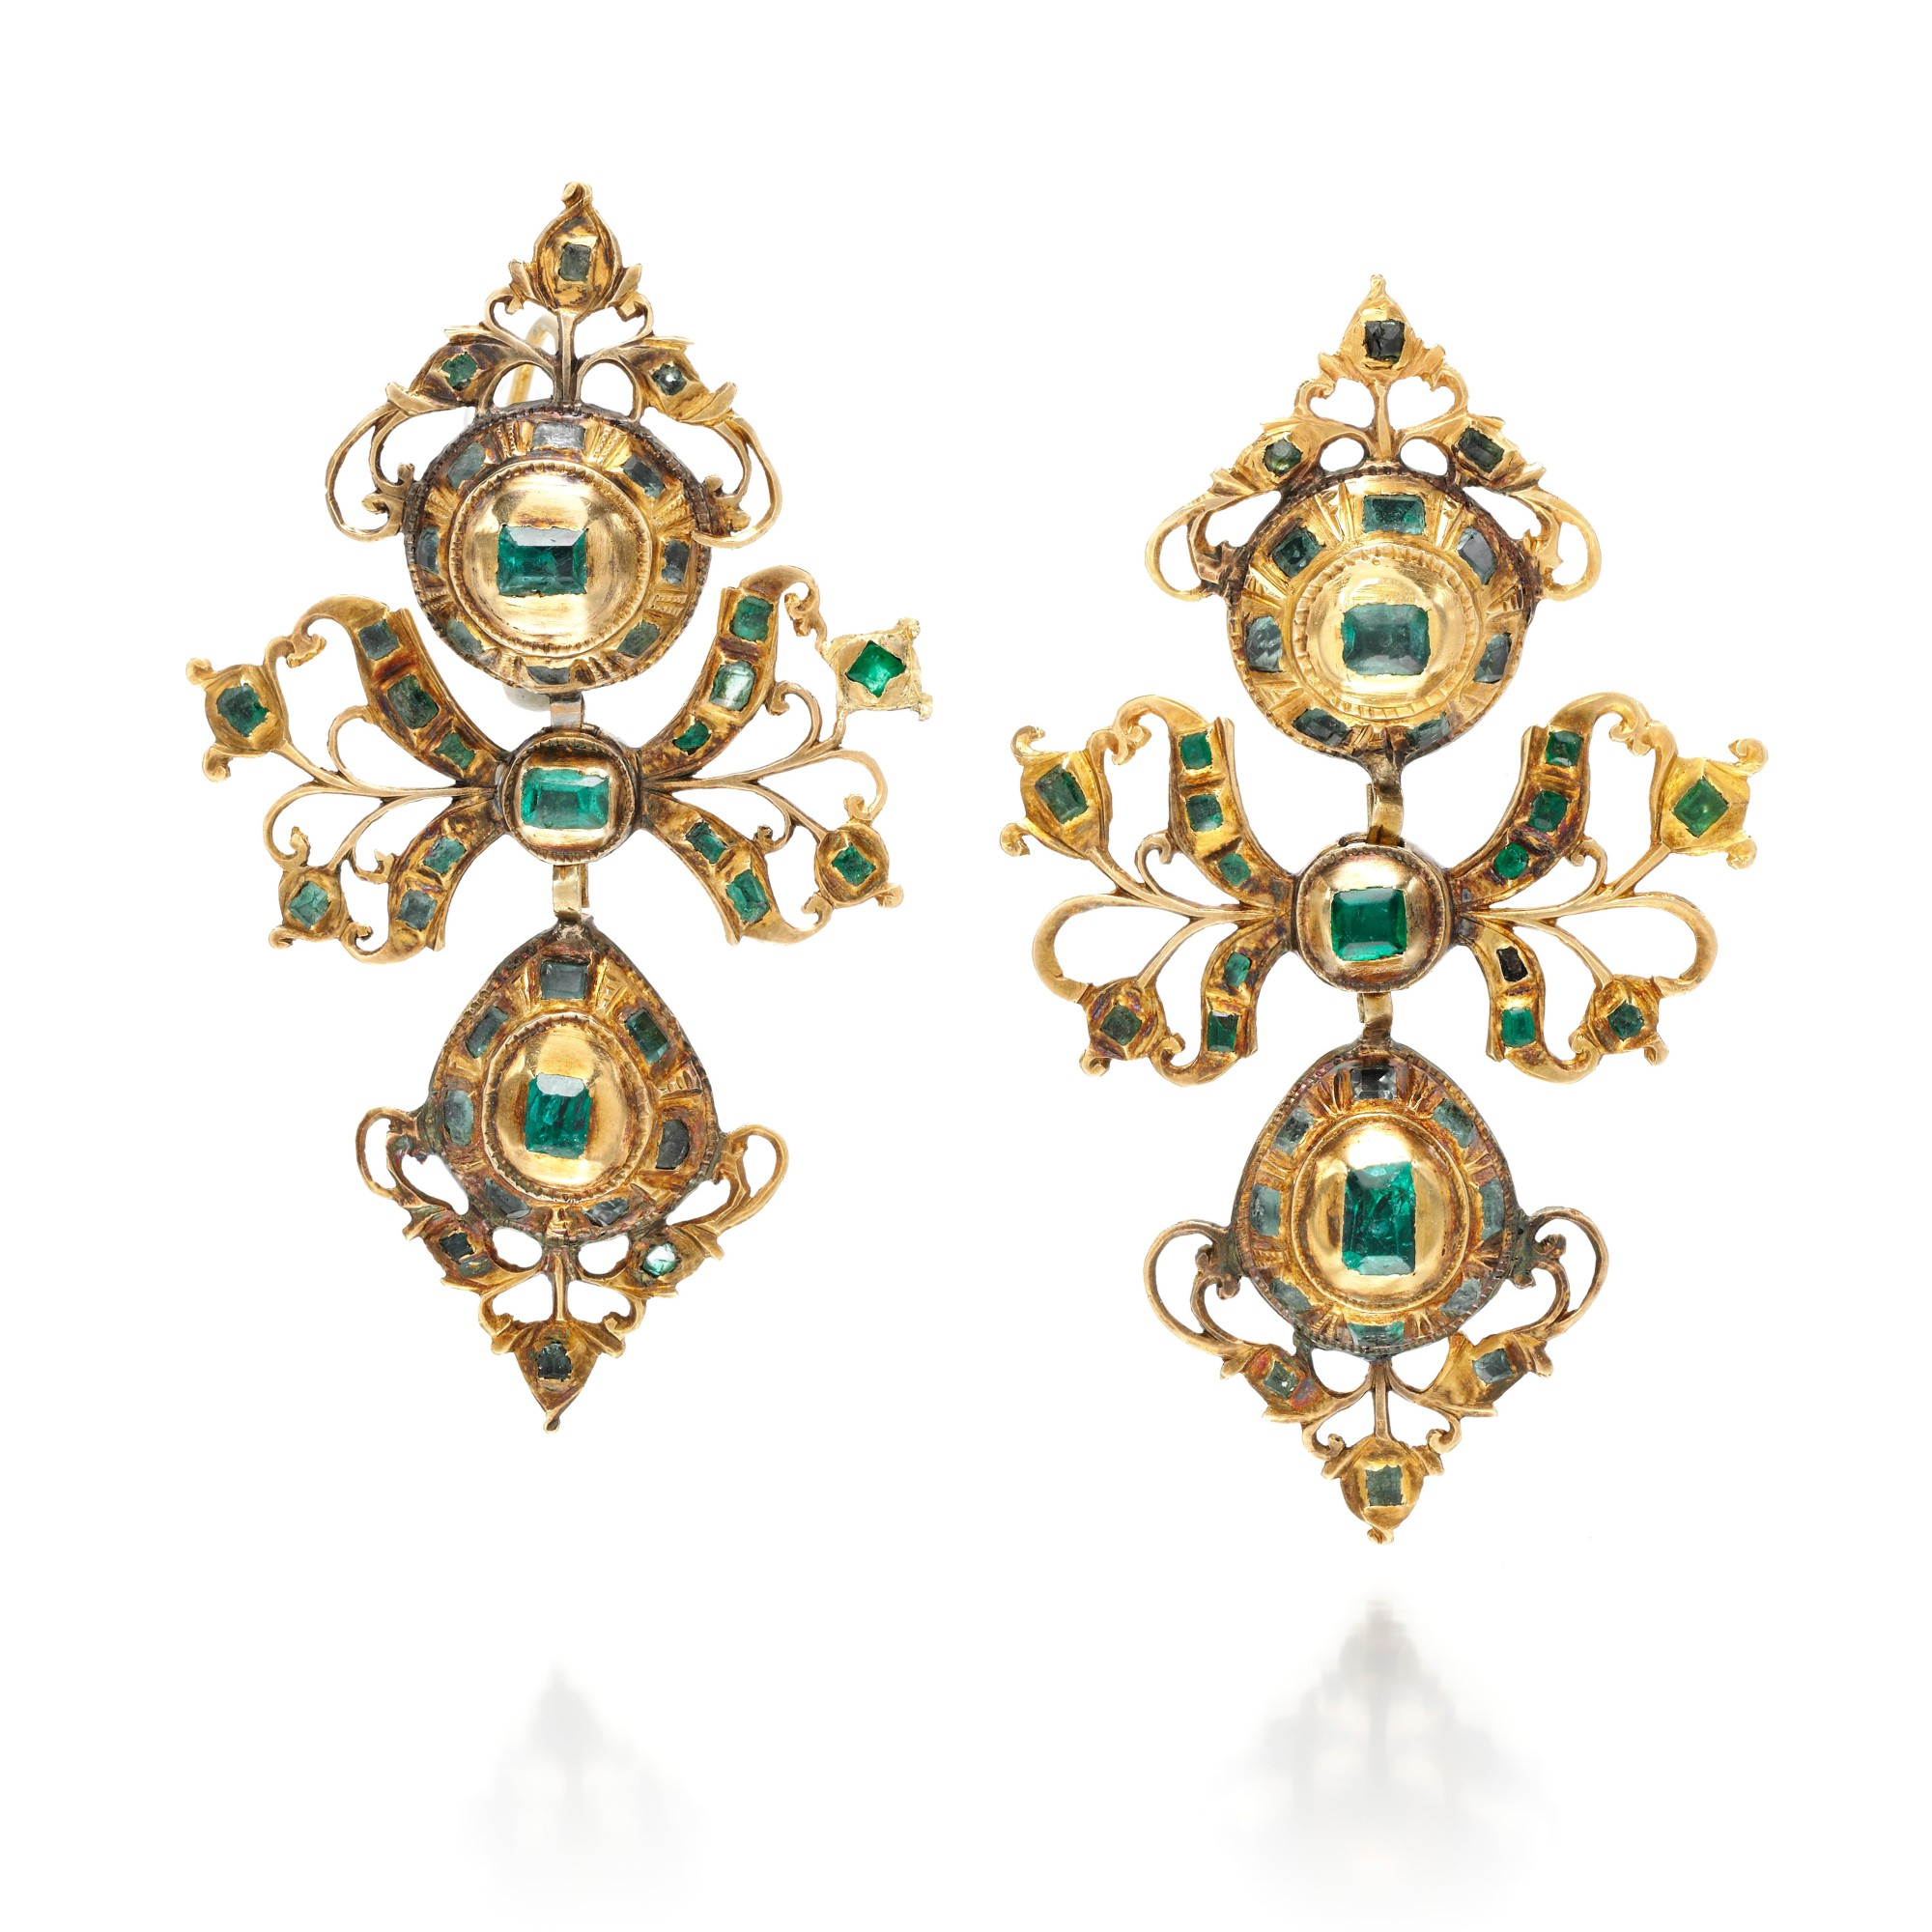 PAIR OF EMERALD EARRINGS, LATE 18TH CENTURY